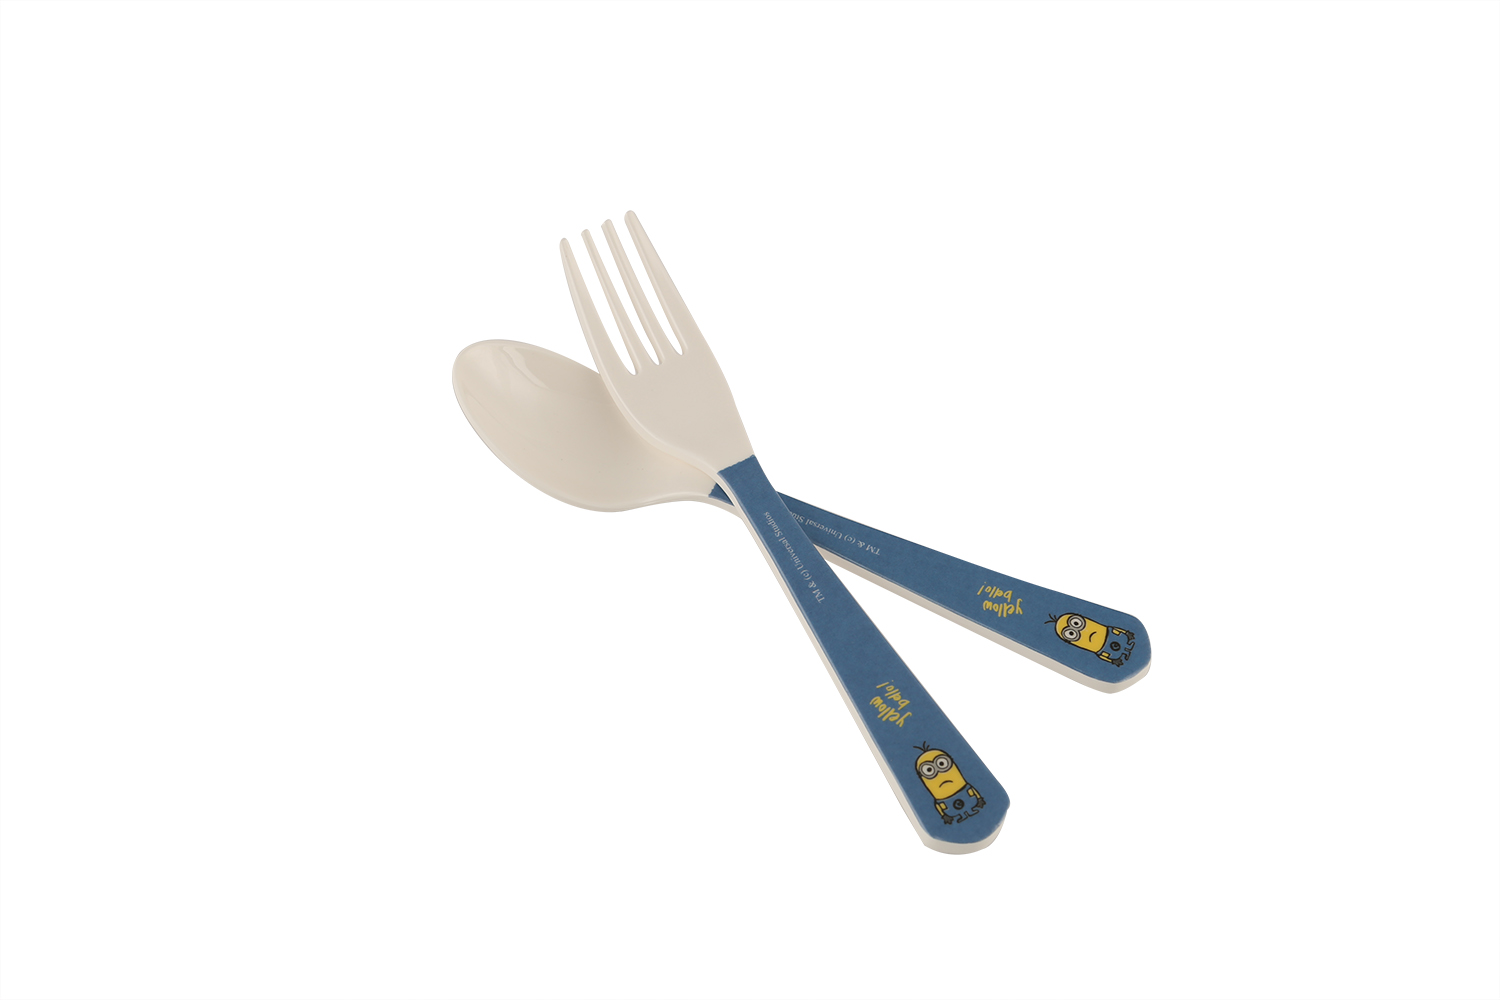 Fork & Spoon Set 2-Minions Forks in Multicolor Colour by Servewell